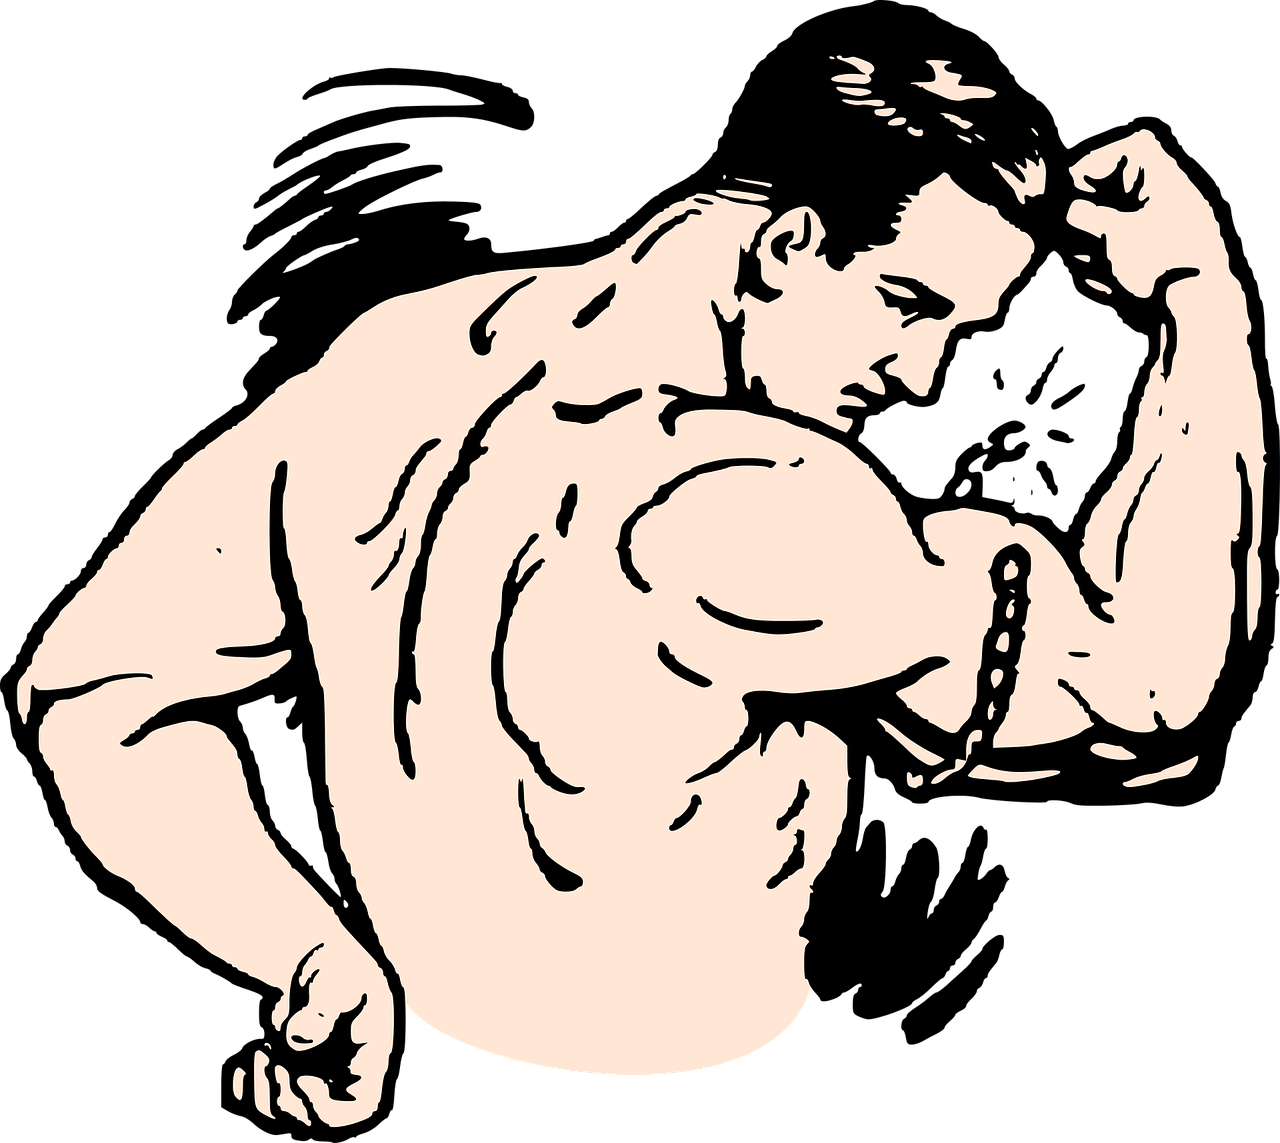 This is why your. Dumbbells clipart muscular strength exercise